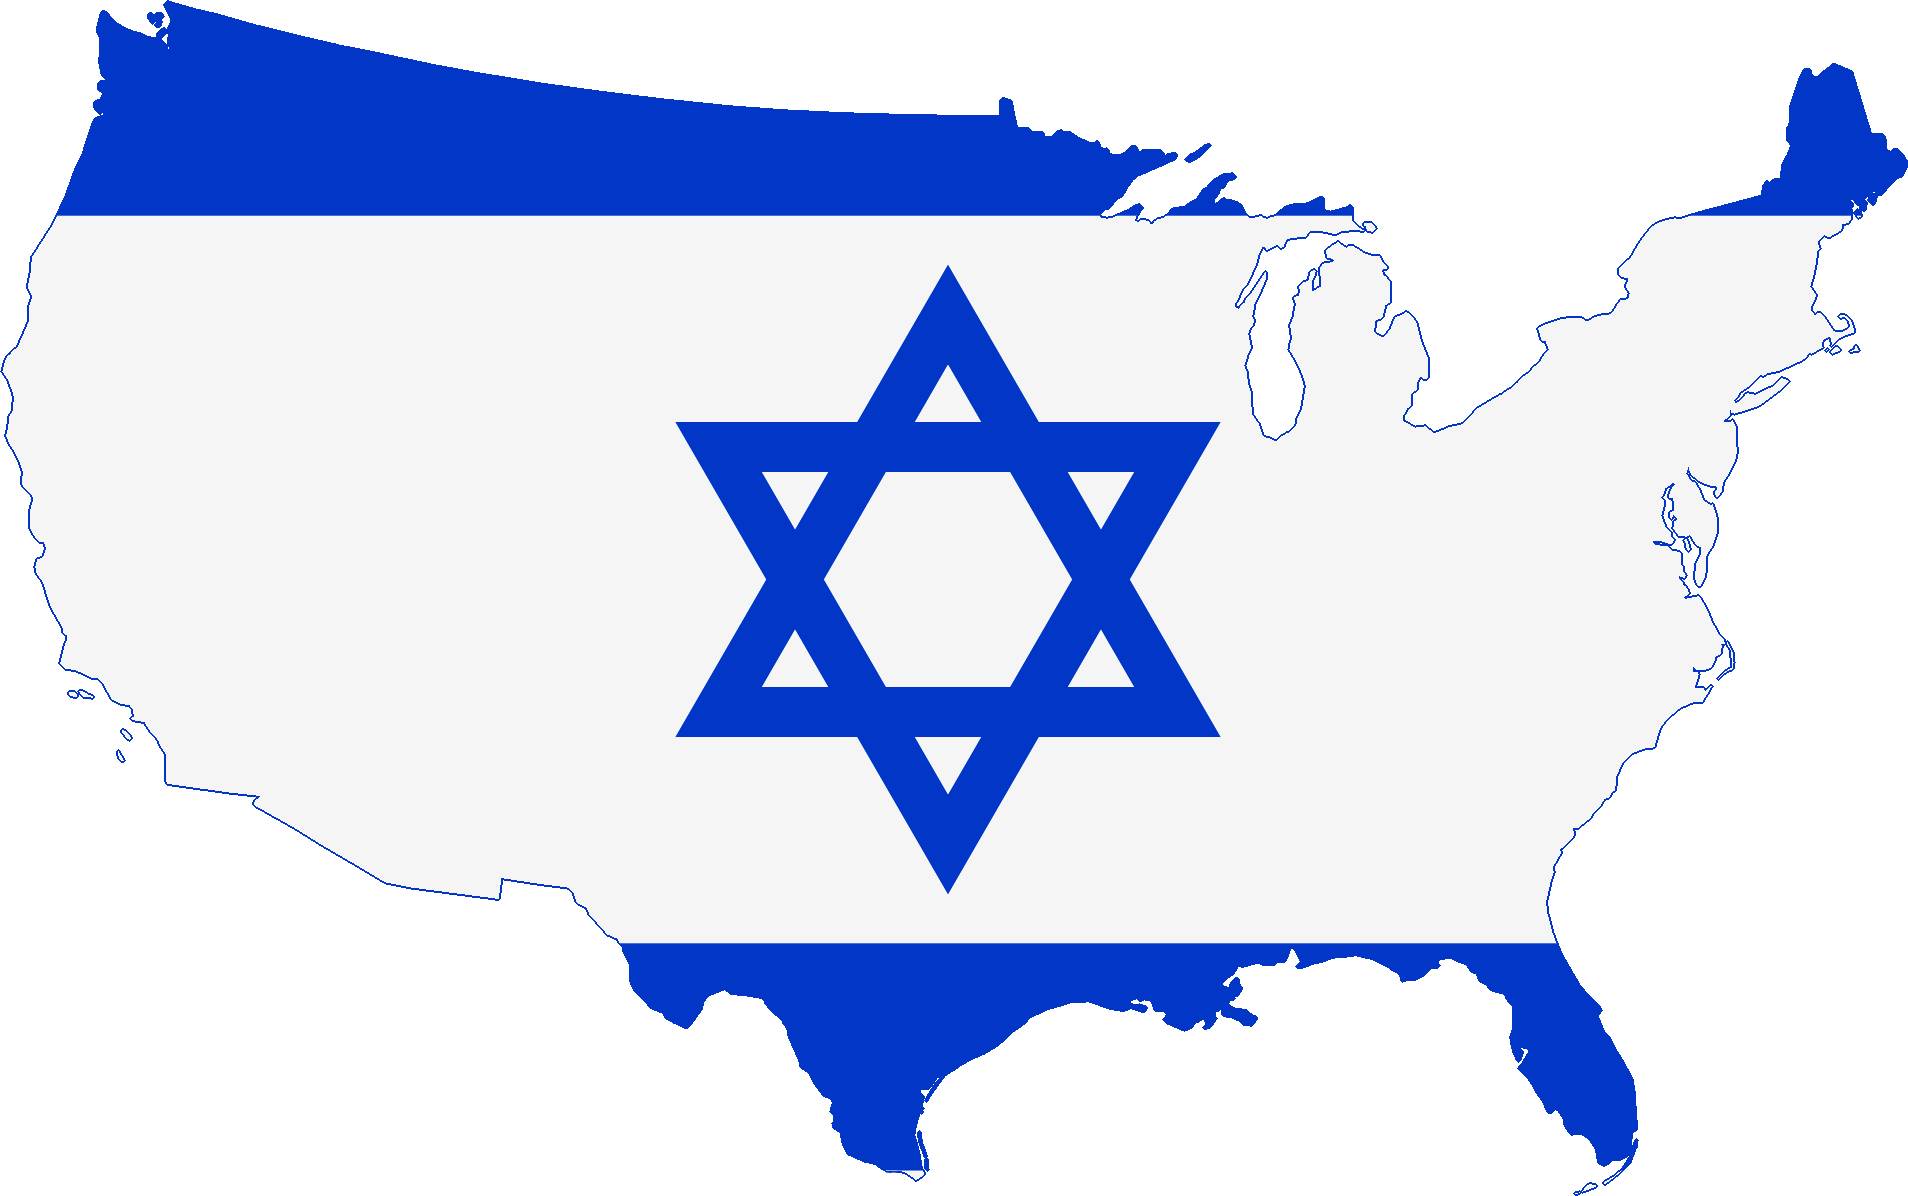 Israel Flag Of Israel Vector Graphics Stock   Israel Flag Transparent Image 15031